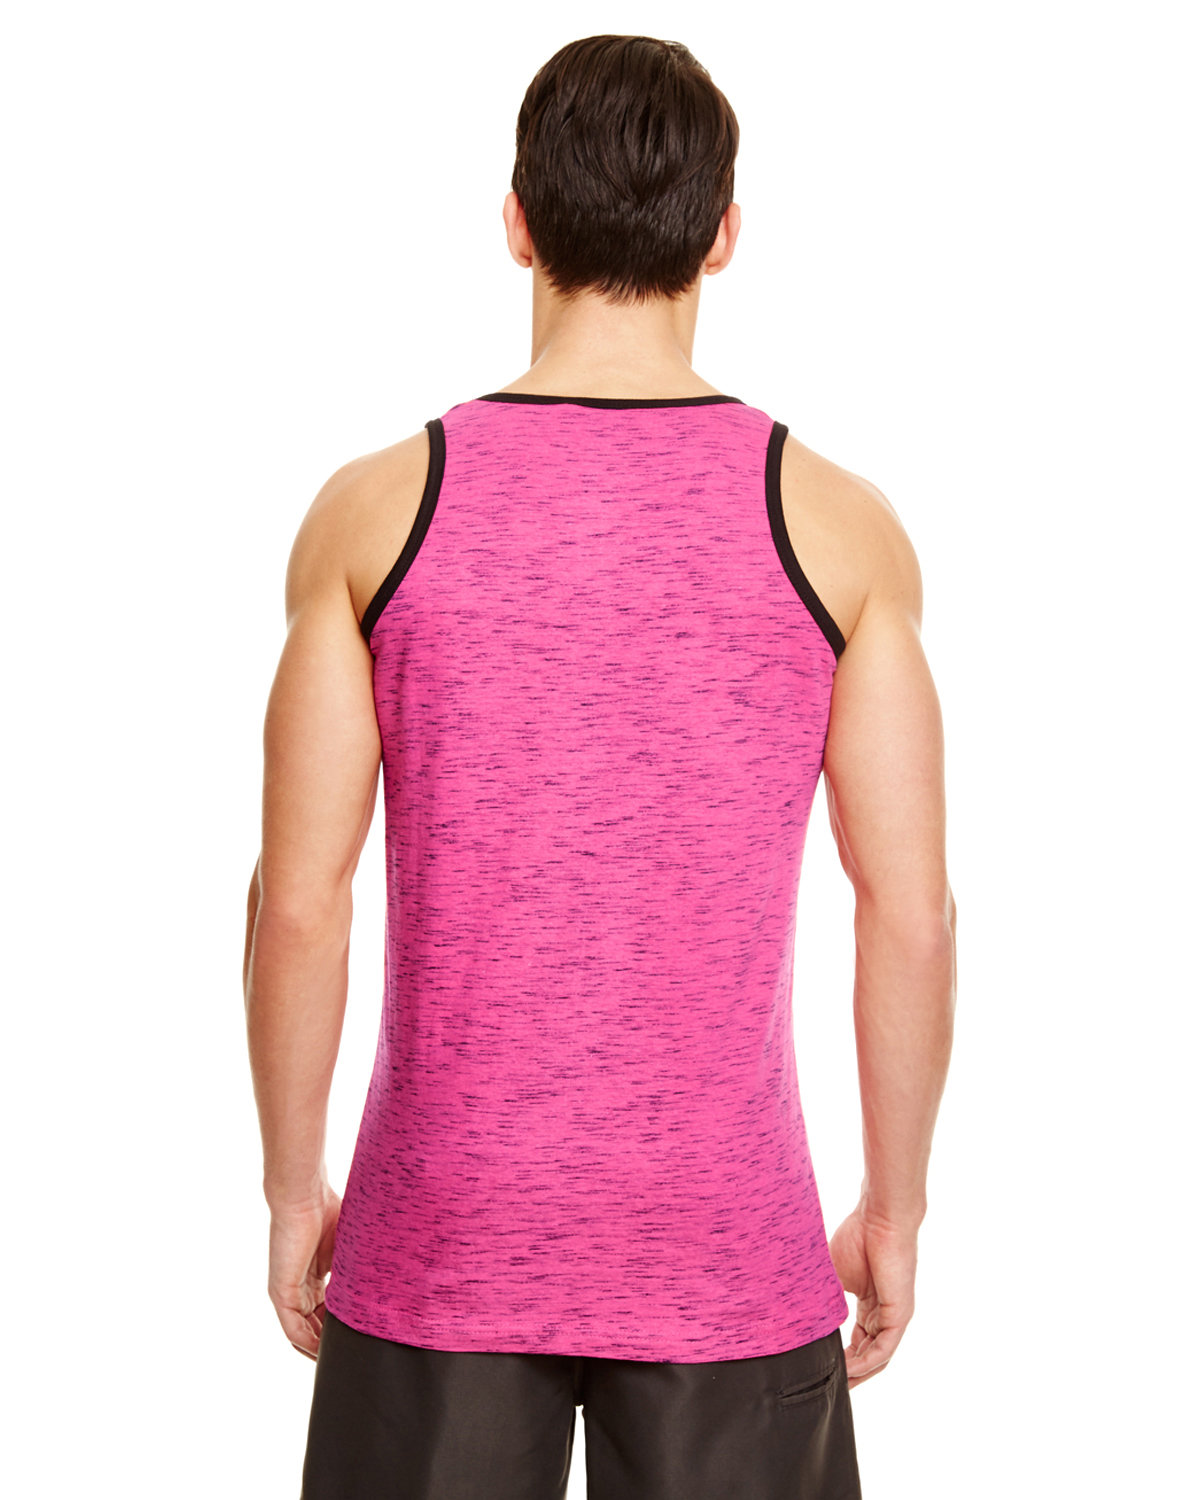 ae66b051d3bb3f B9102 Burnside Adult Injected Slub Tank Top. Touch to zoom. Color Shown   pink